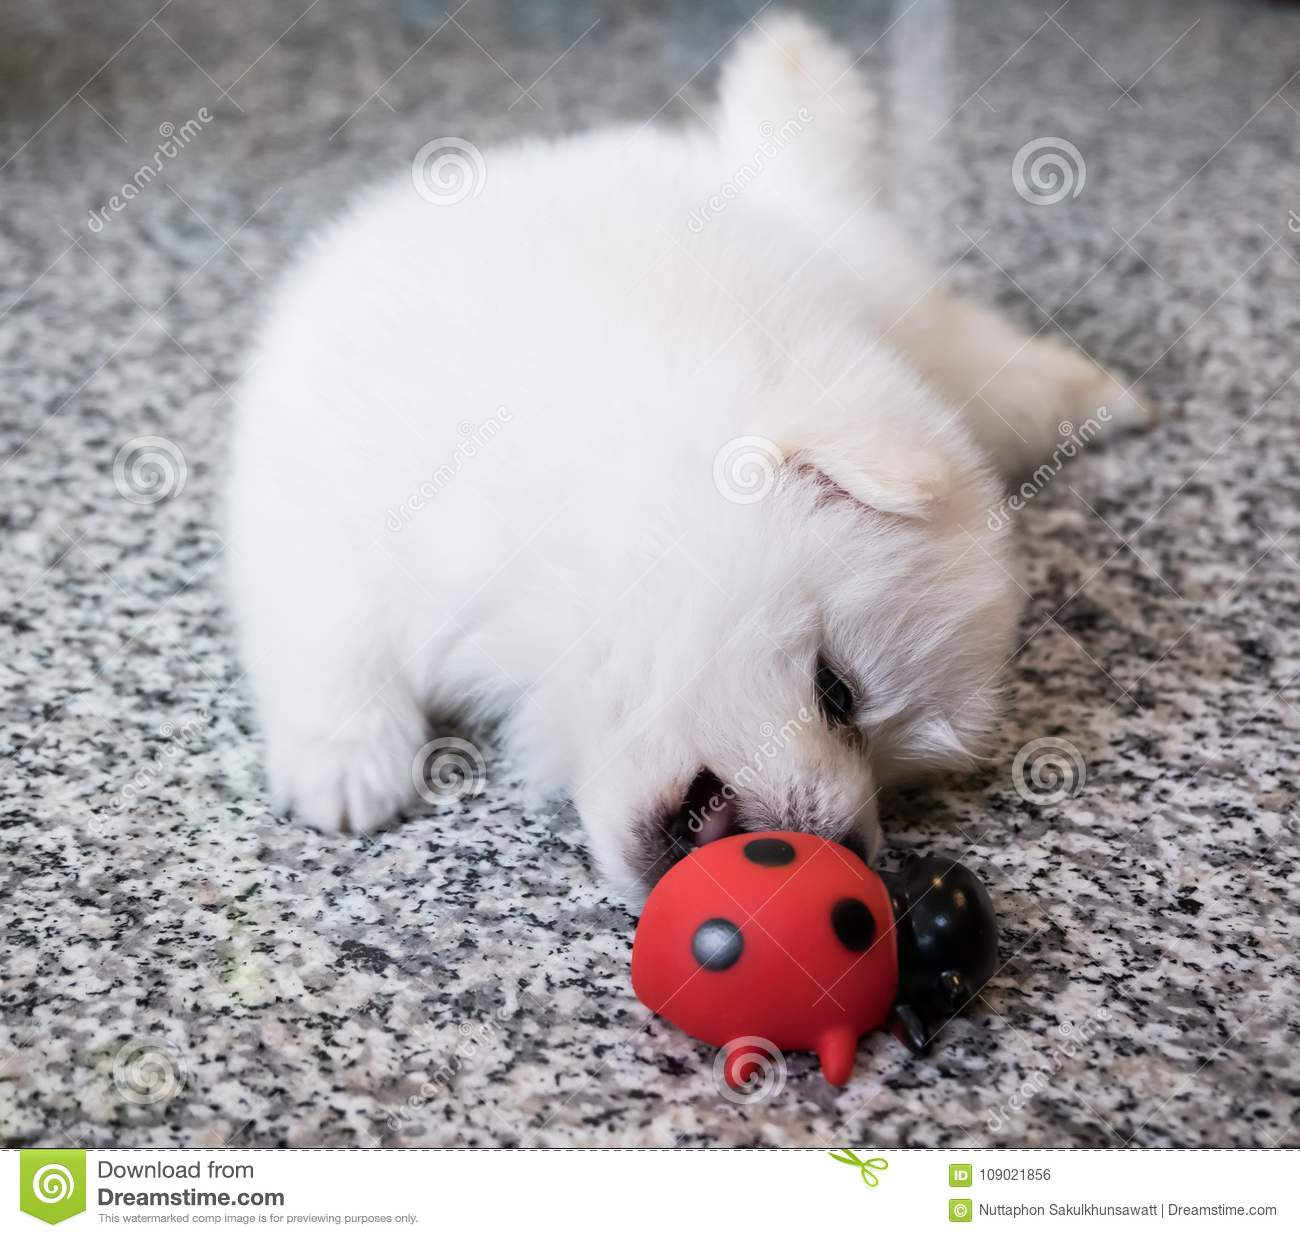 Cute White Pomeranian Puppy On Granite Background Stock Photo